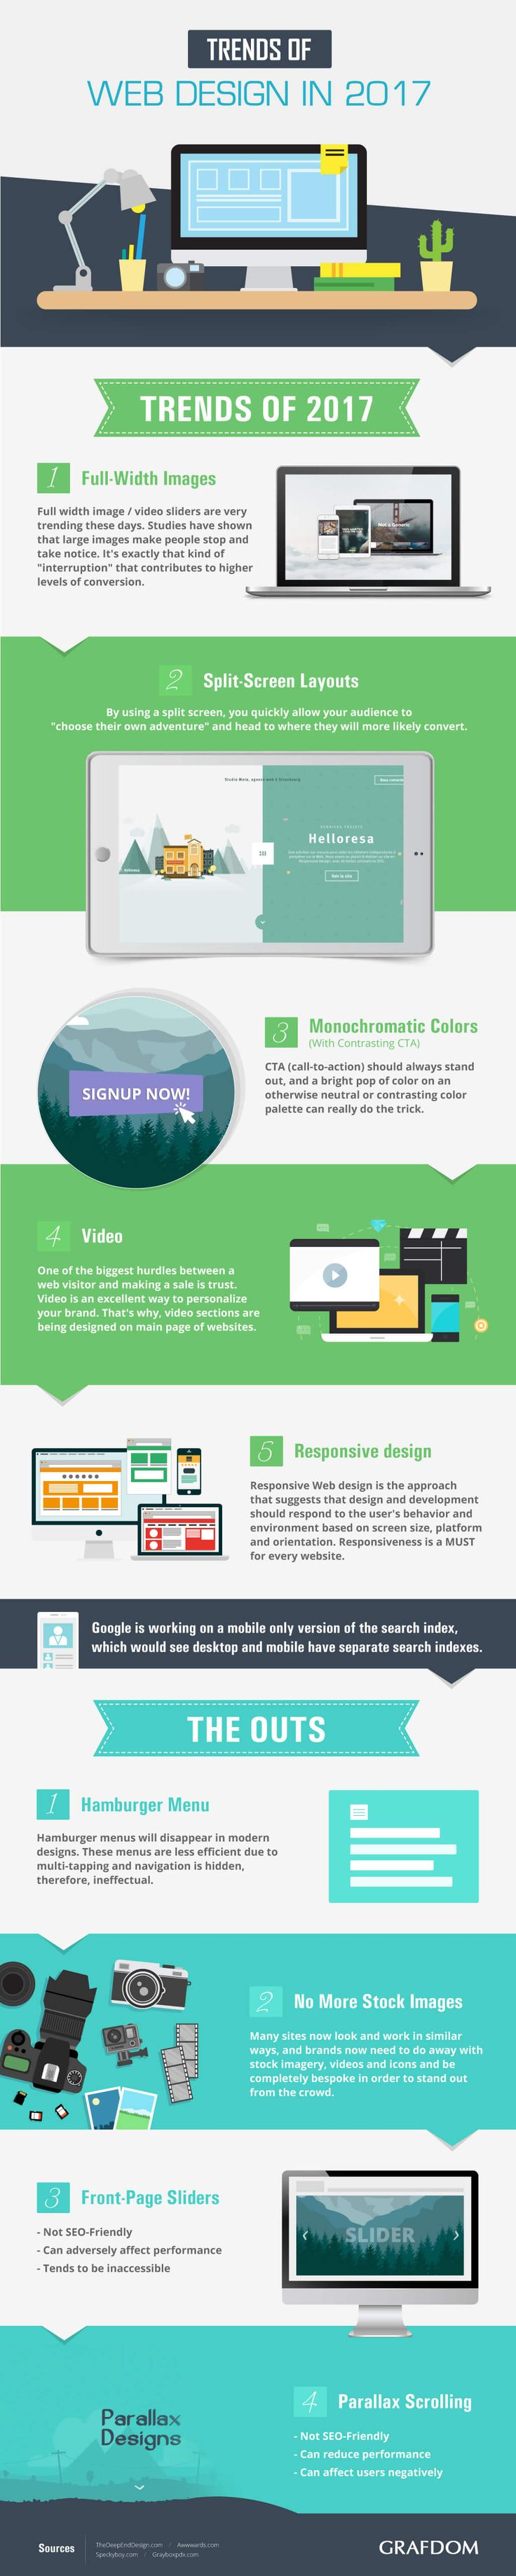 How Modern is Your Website? 4 #WebDesign Trends to Ditch in 2017 #Infographic